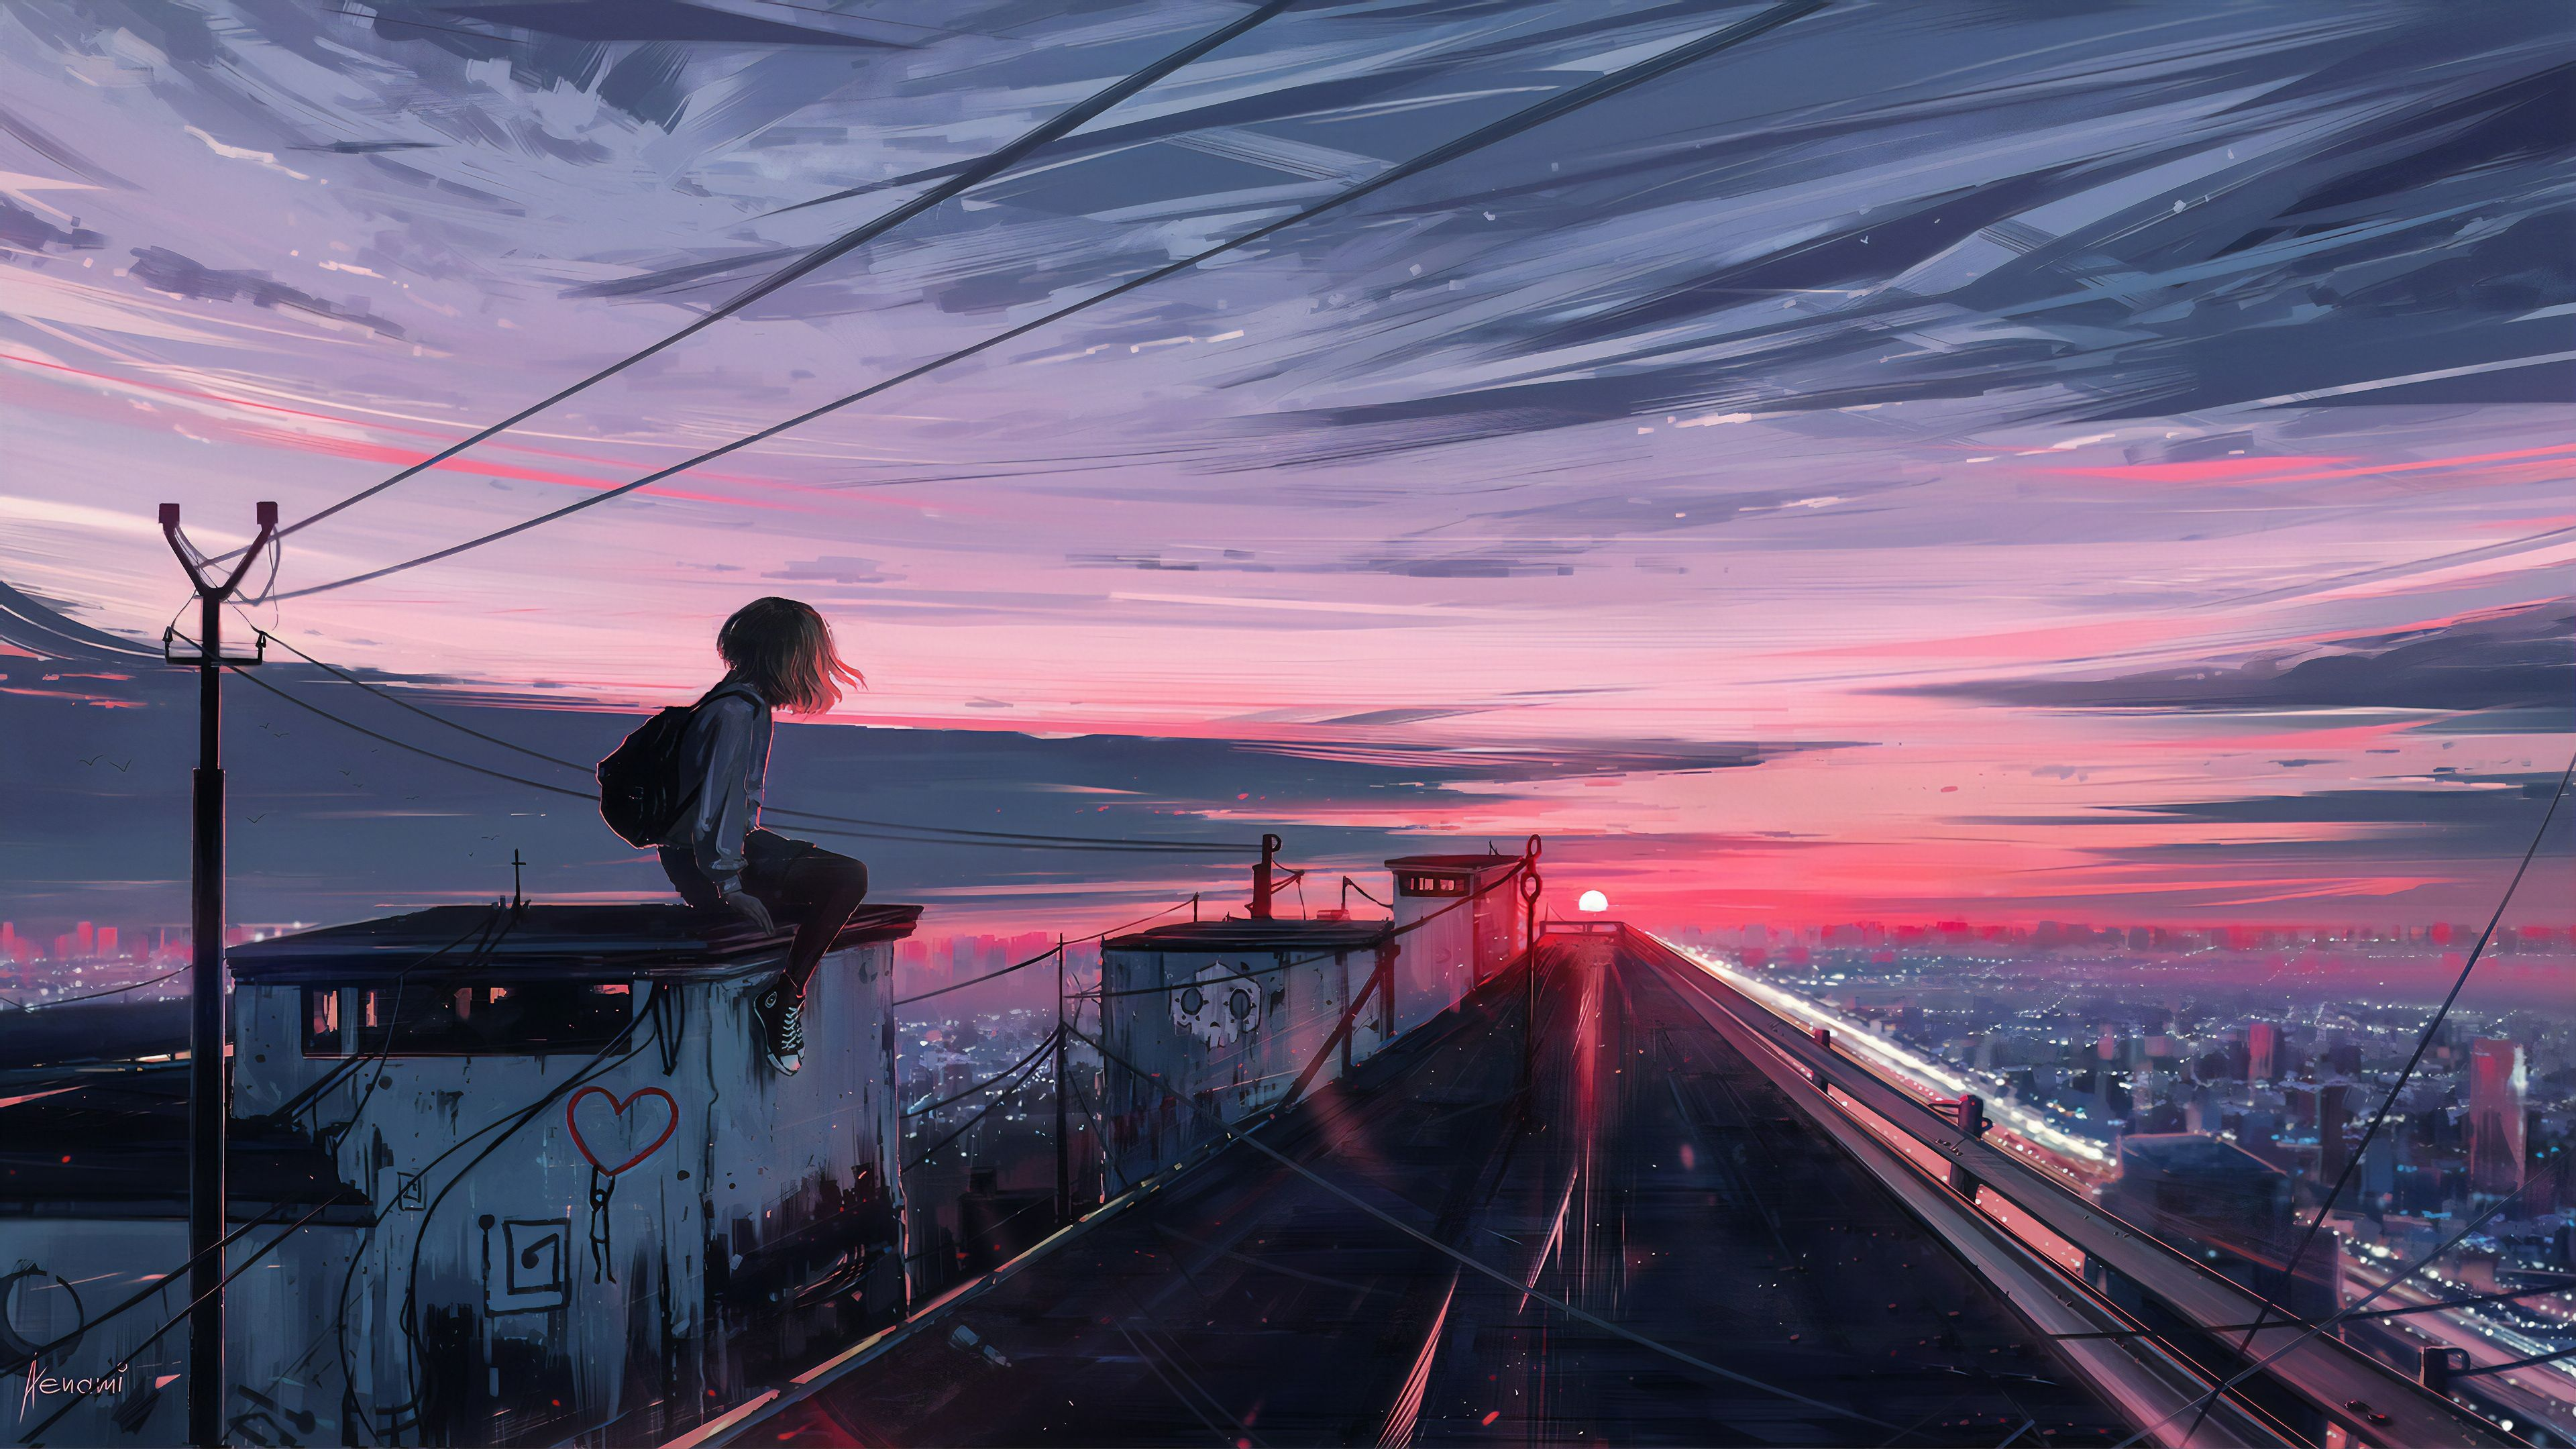 Roofline Girl Hd Wallpapers Digital Art Wallpapers Artwork Wallpapers Artstation Wallpapers Artist Anime Scenery Wallpaper Scenery Wallpaper Anime Scenery